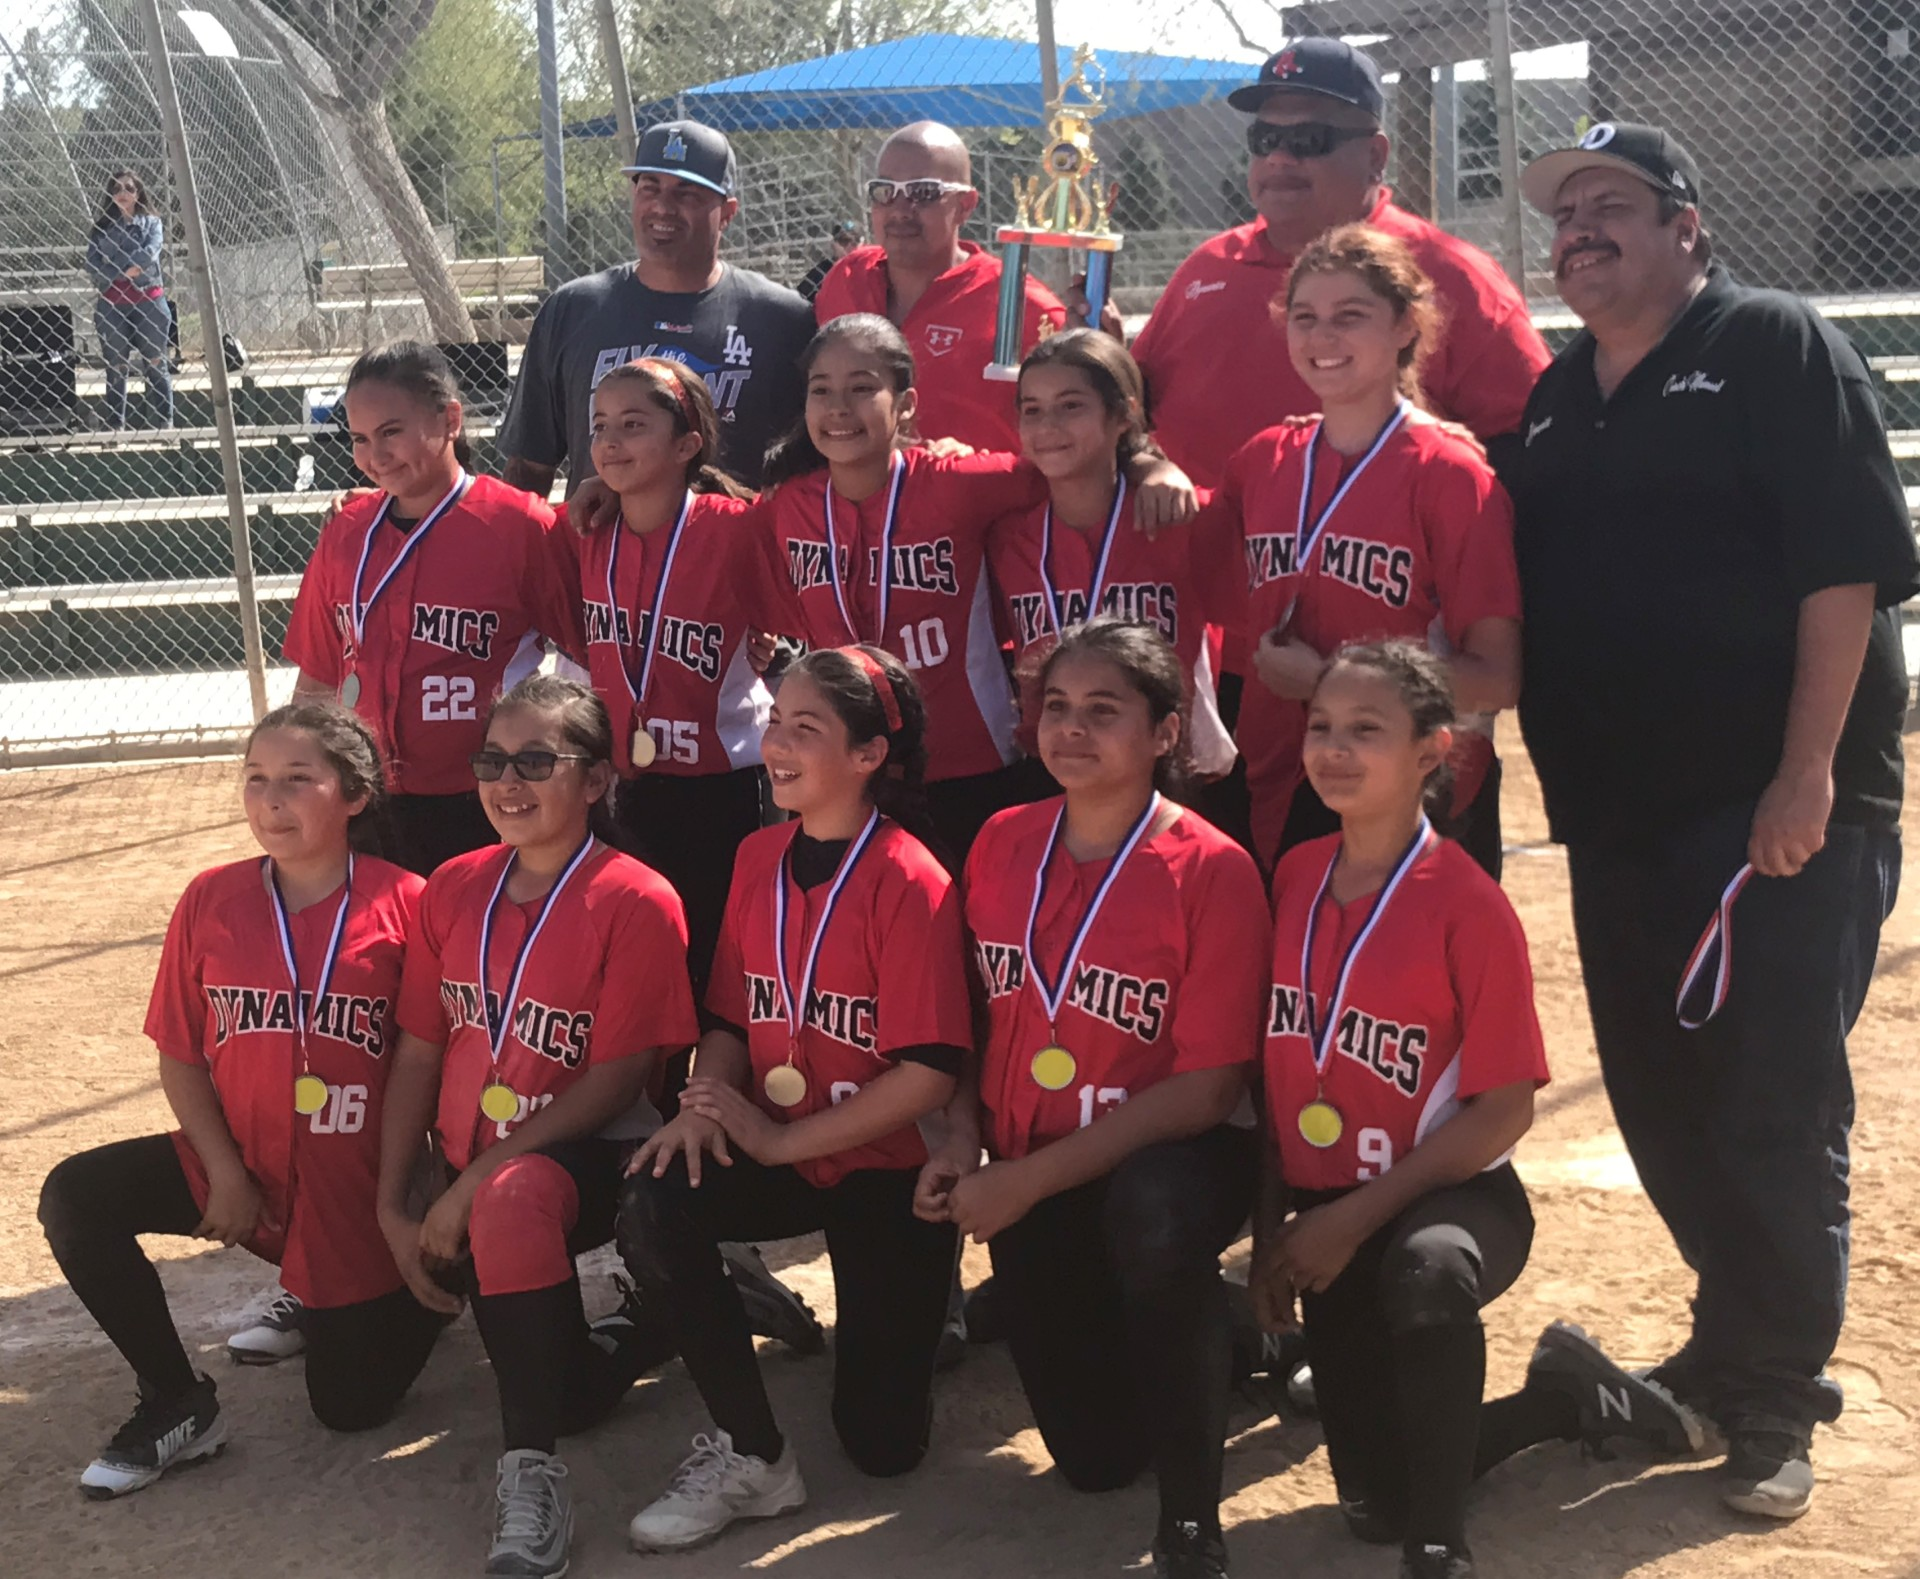 12u - Runner Up - Dynamics